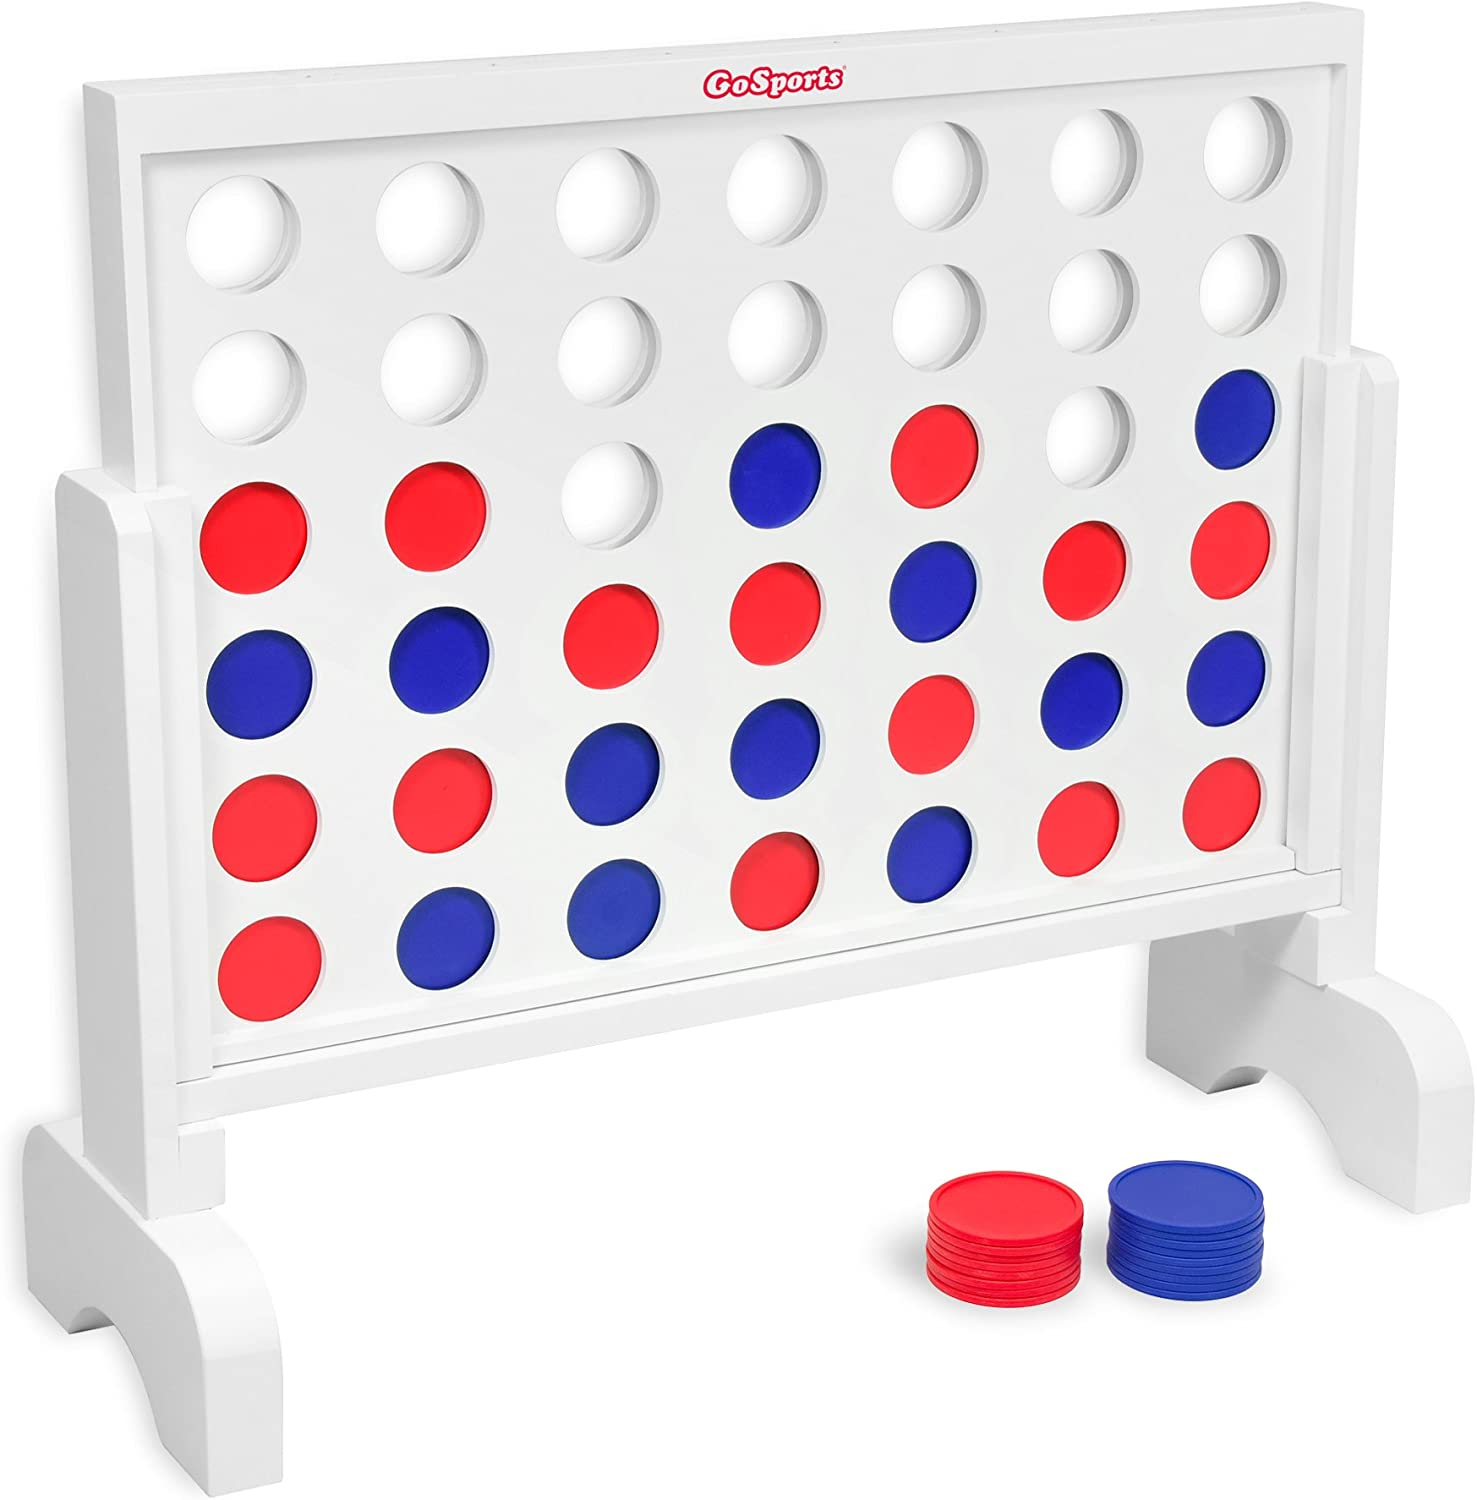 GoSports Giant Wooden 4 in a Row Game | Choose Between Classic White or Dark Stain | 2 Foot Width - Huge 4 Connect Family Fun with Coins, Case and Rules